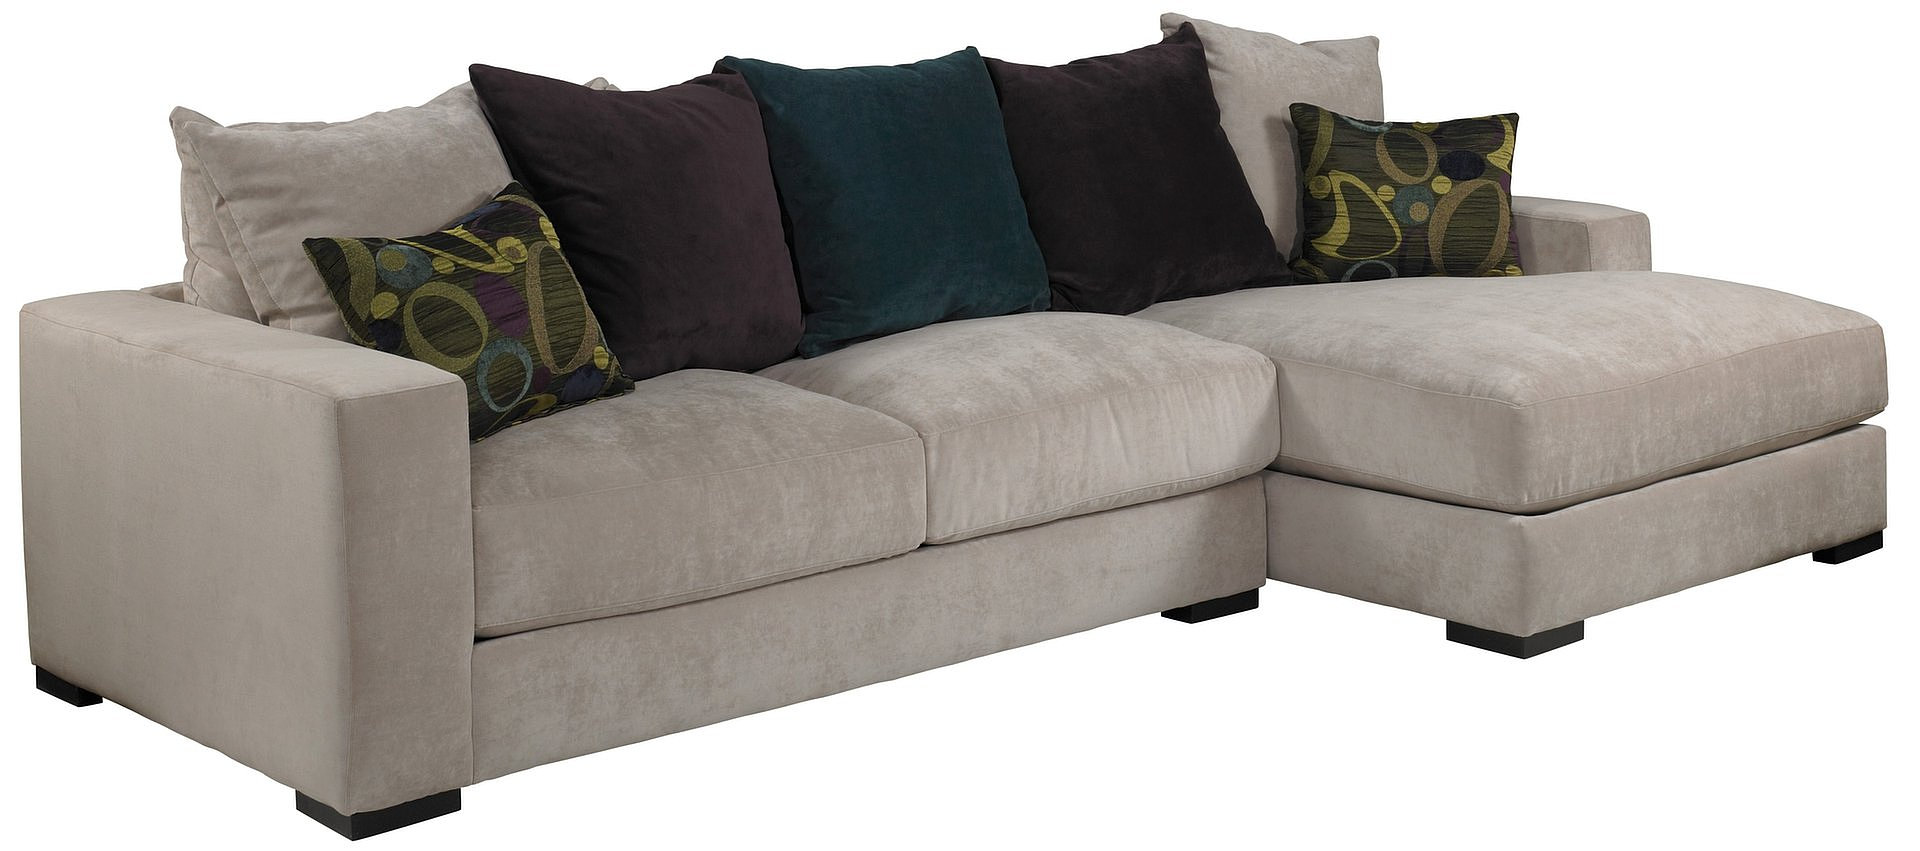 Domicile Furniture Lombardy Sectional